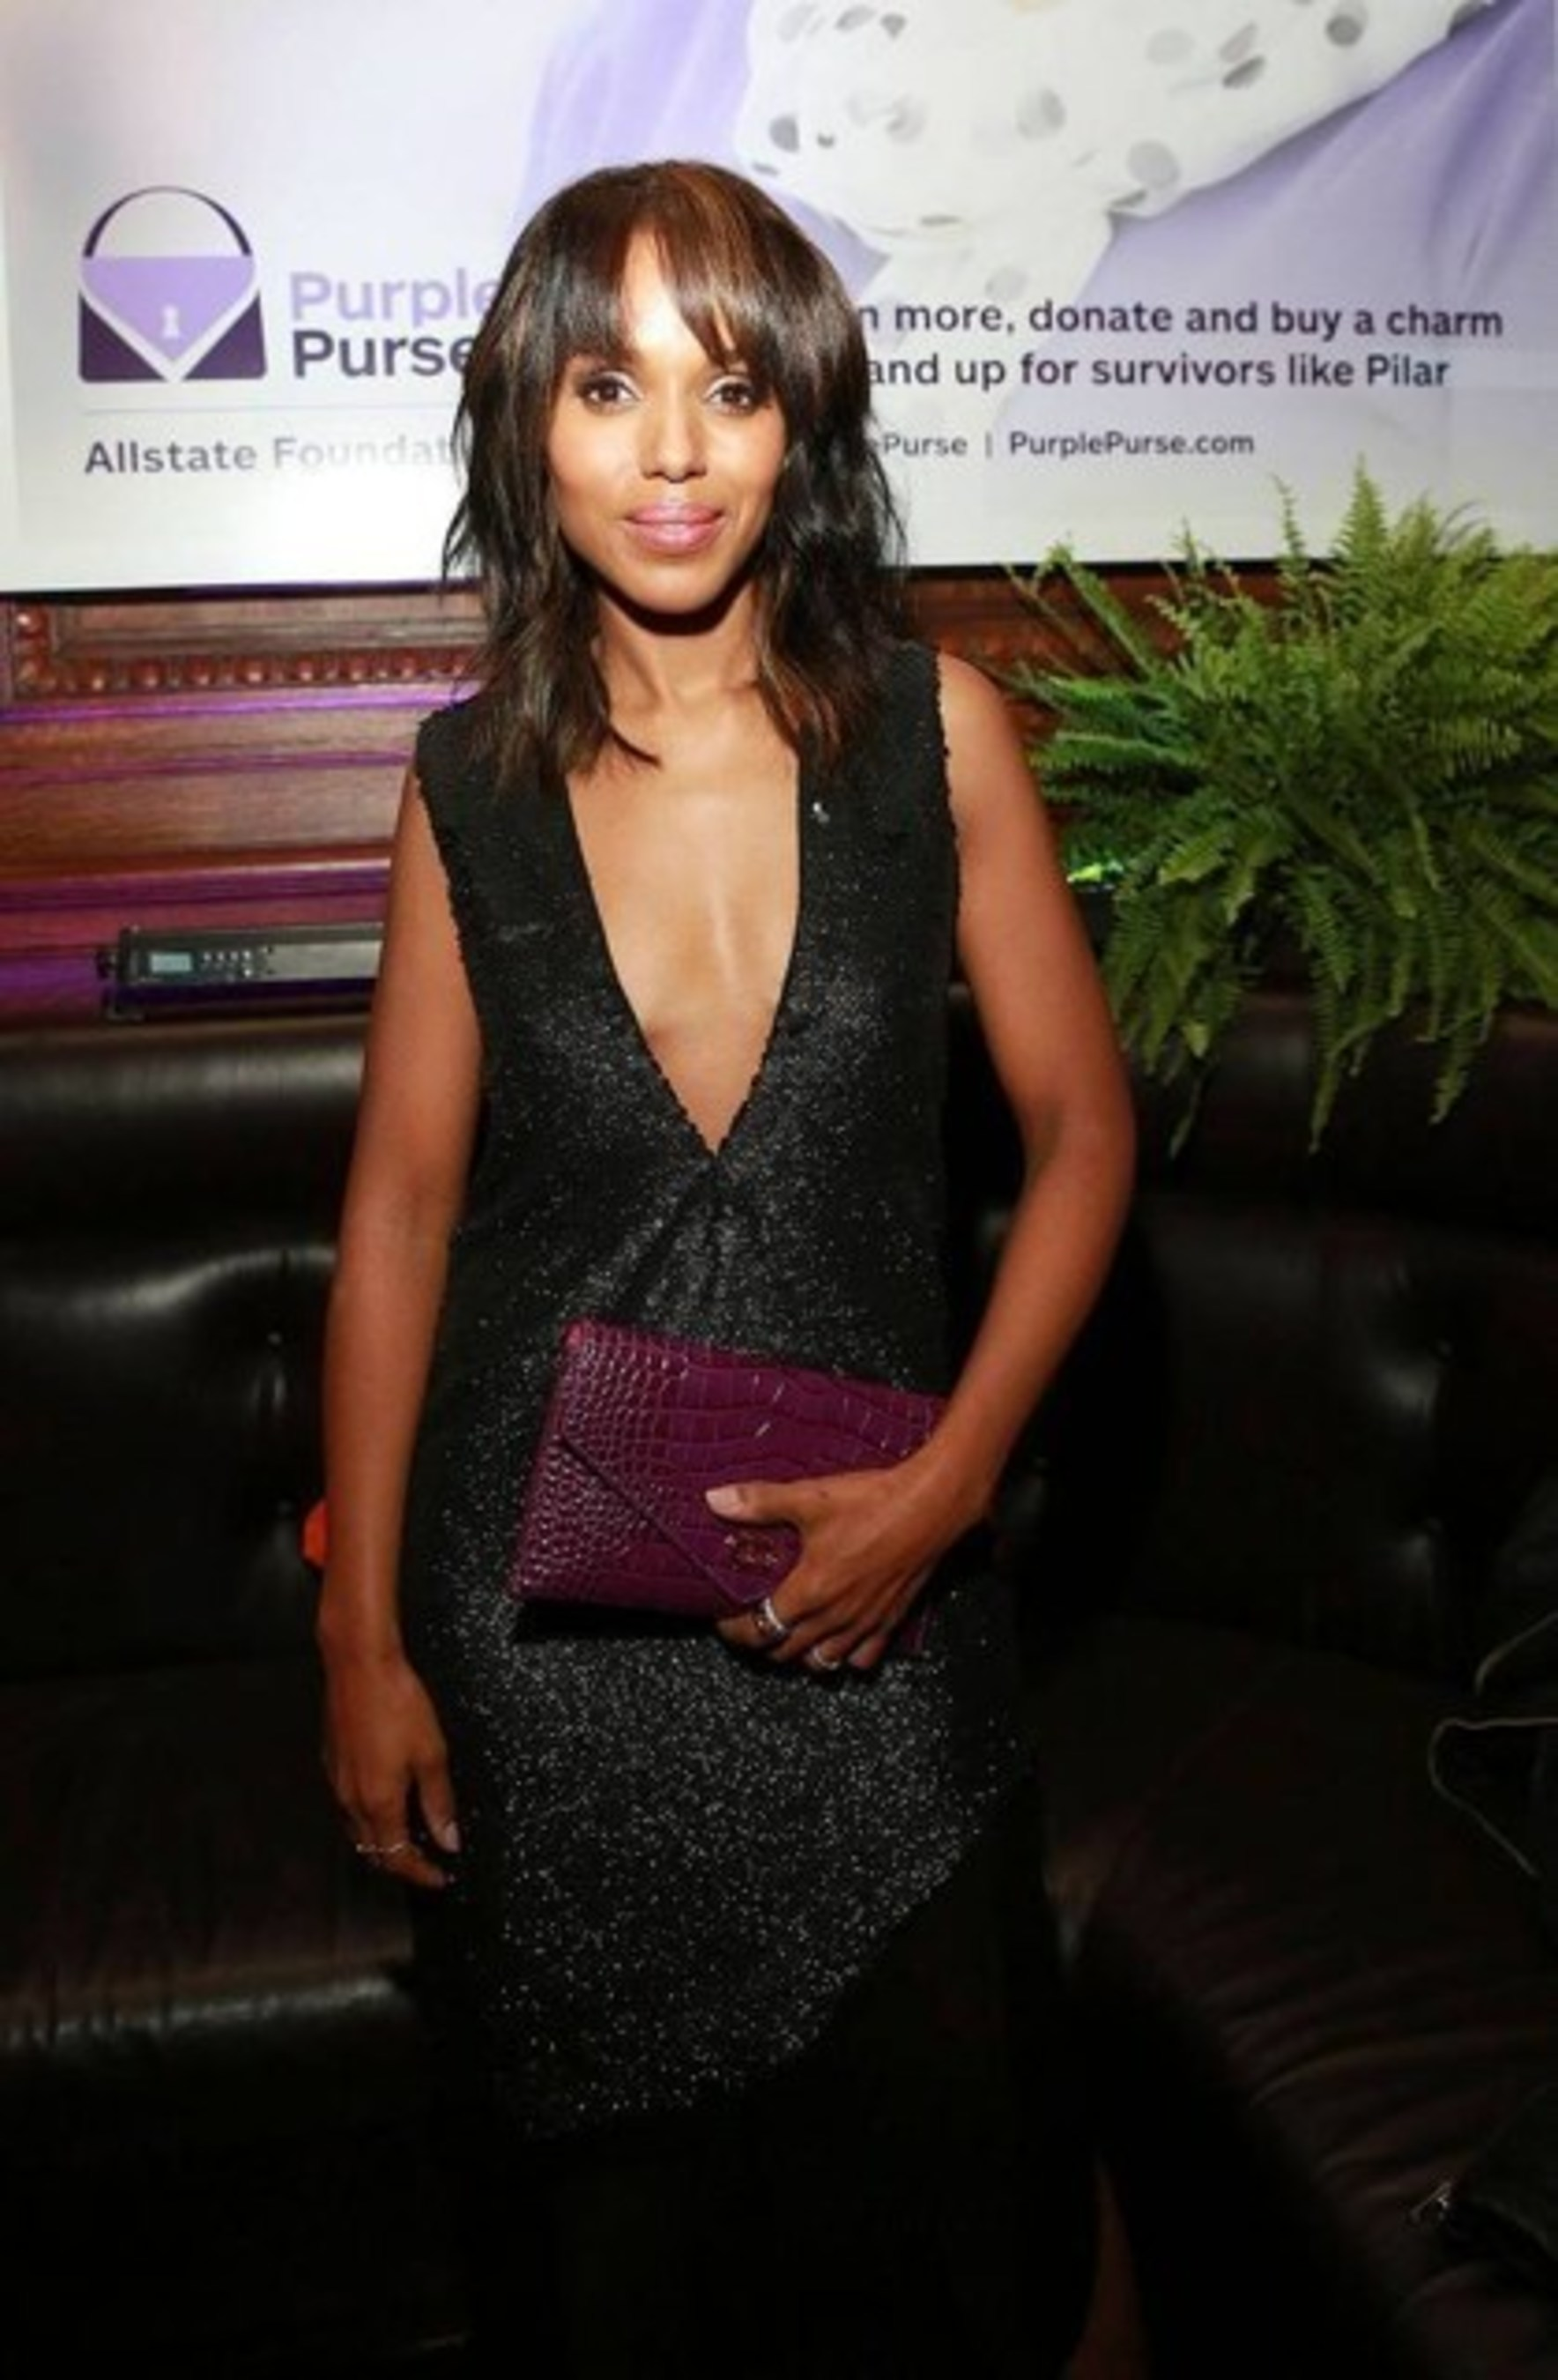 Allstate Foundation Purple Purse Ambassador Kerry Washington and the limited-edition purse (purchase at saks.com)